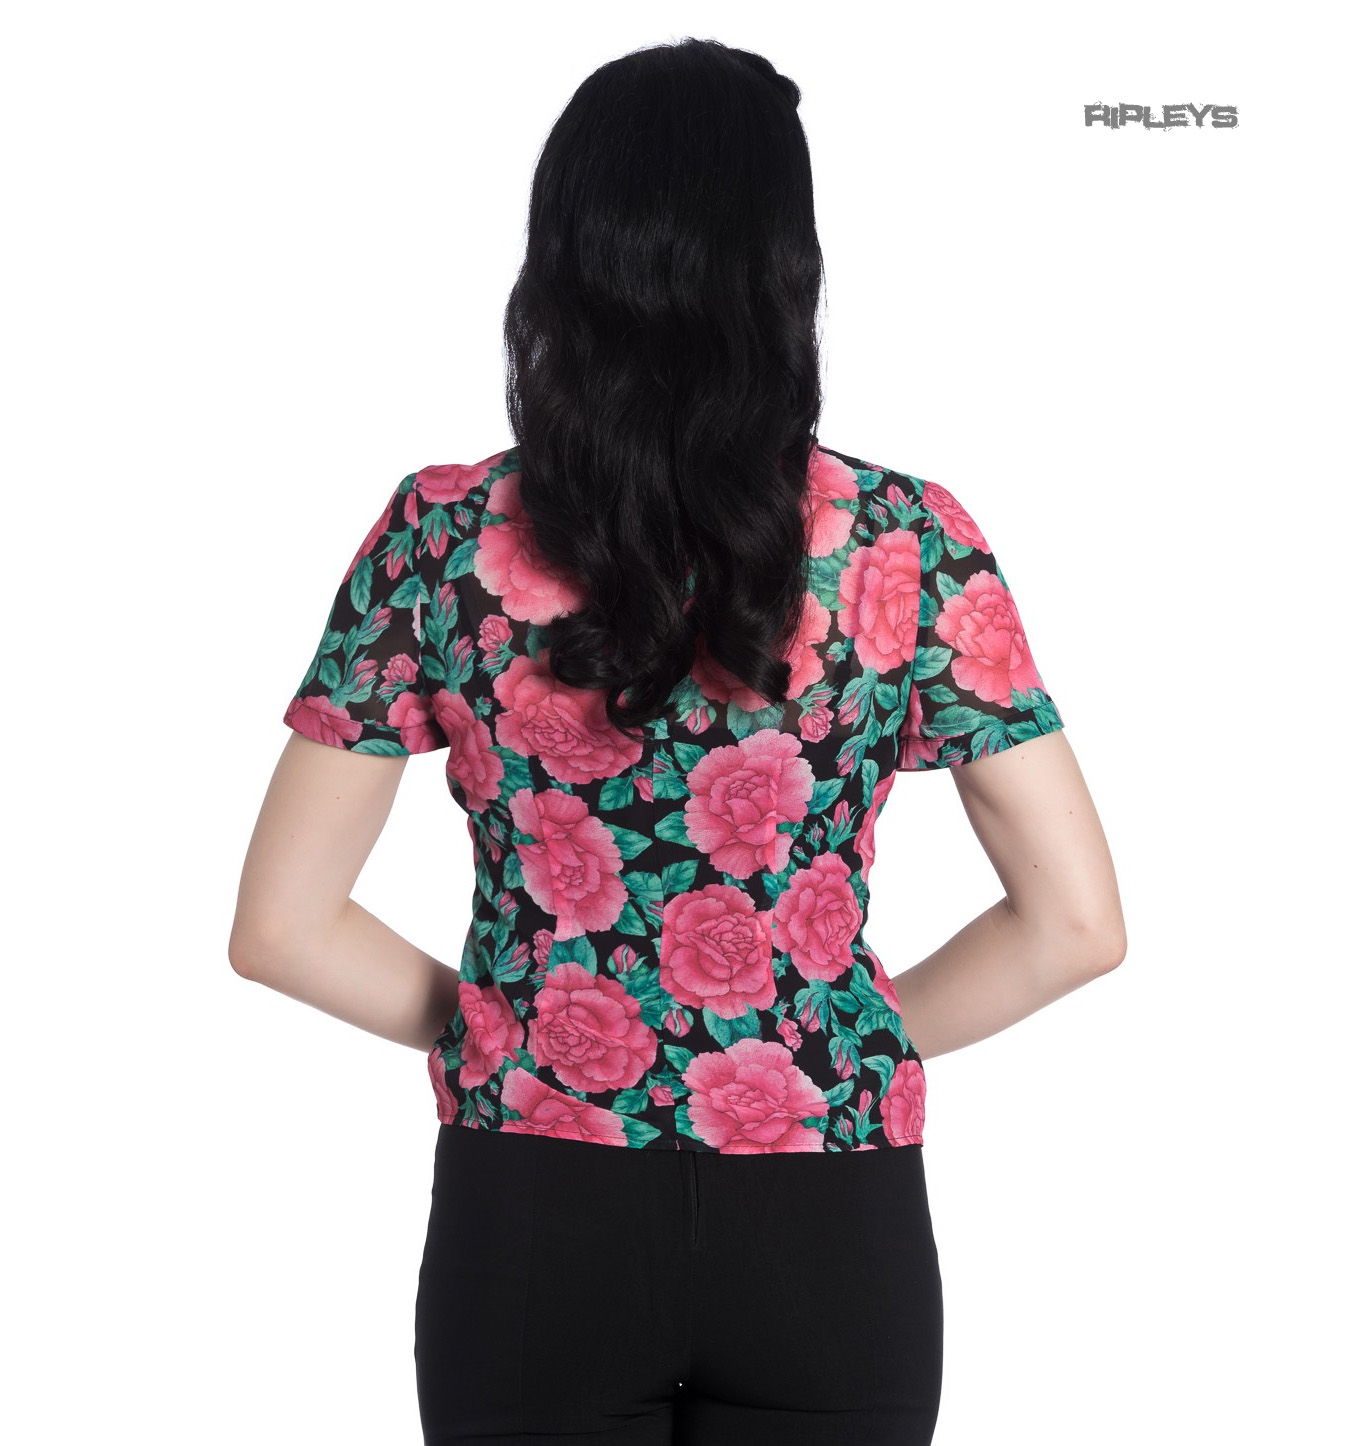 Hell-Bunny-Shirt-Top-Flowers-Roses-EDEN-ROSE-Black-Pink-Blouse-All-Sizes thumbnail 20